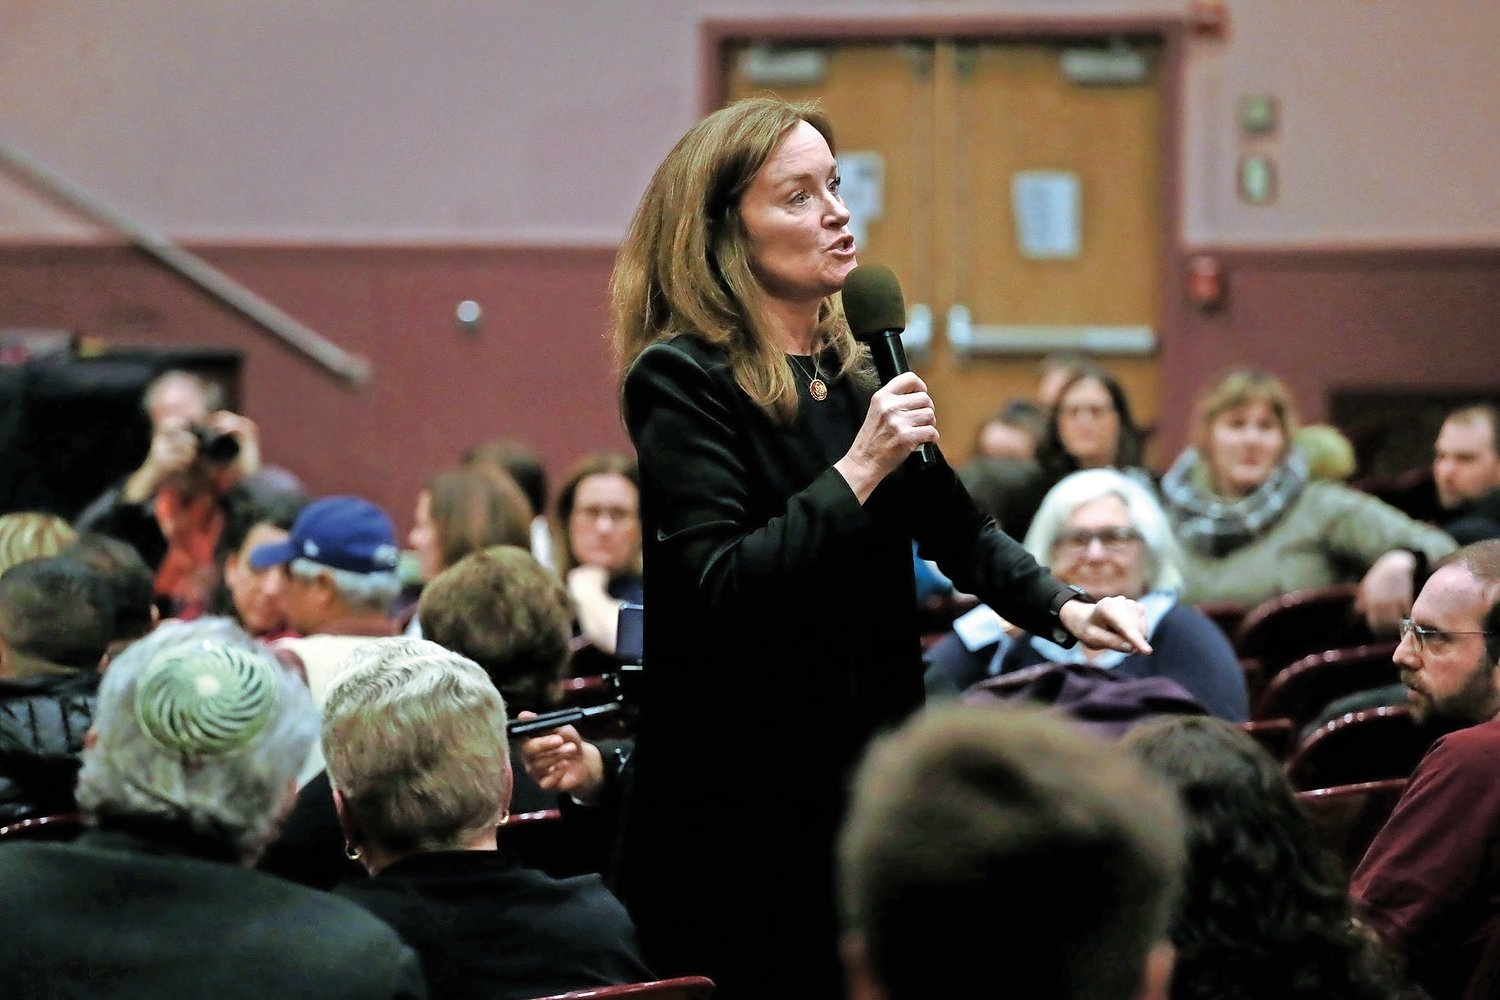 U.S. Rep. Kathleen Rice visited South Side High School on Feb. 28 to address concerns in her district.